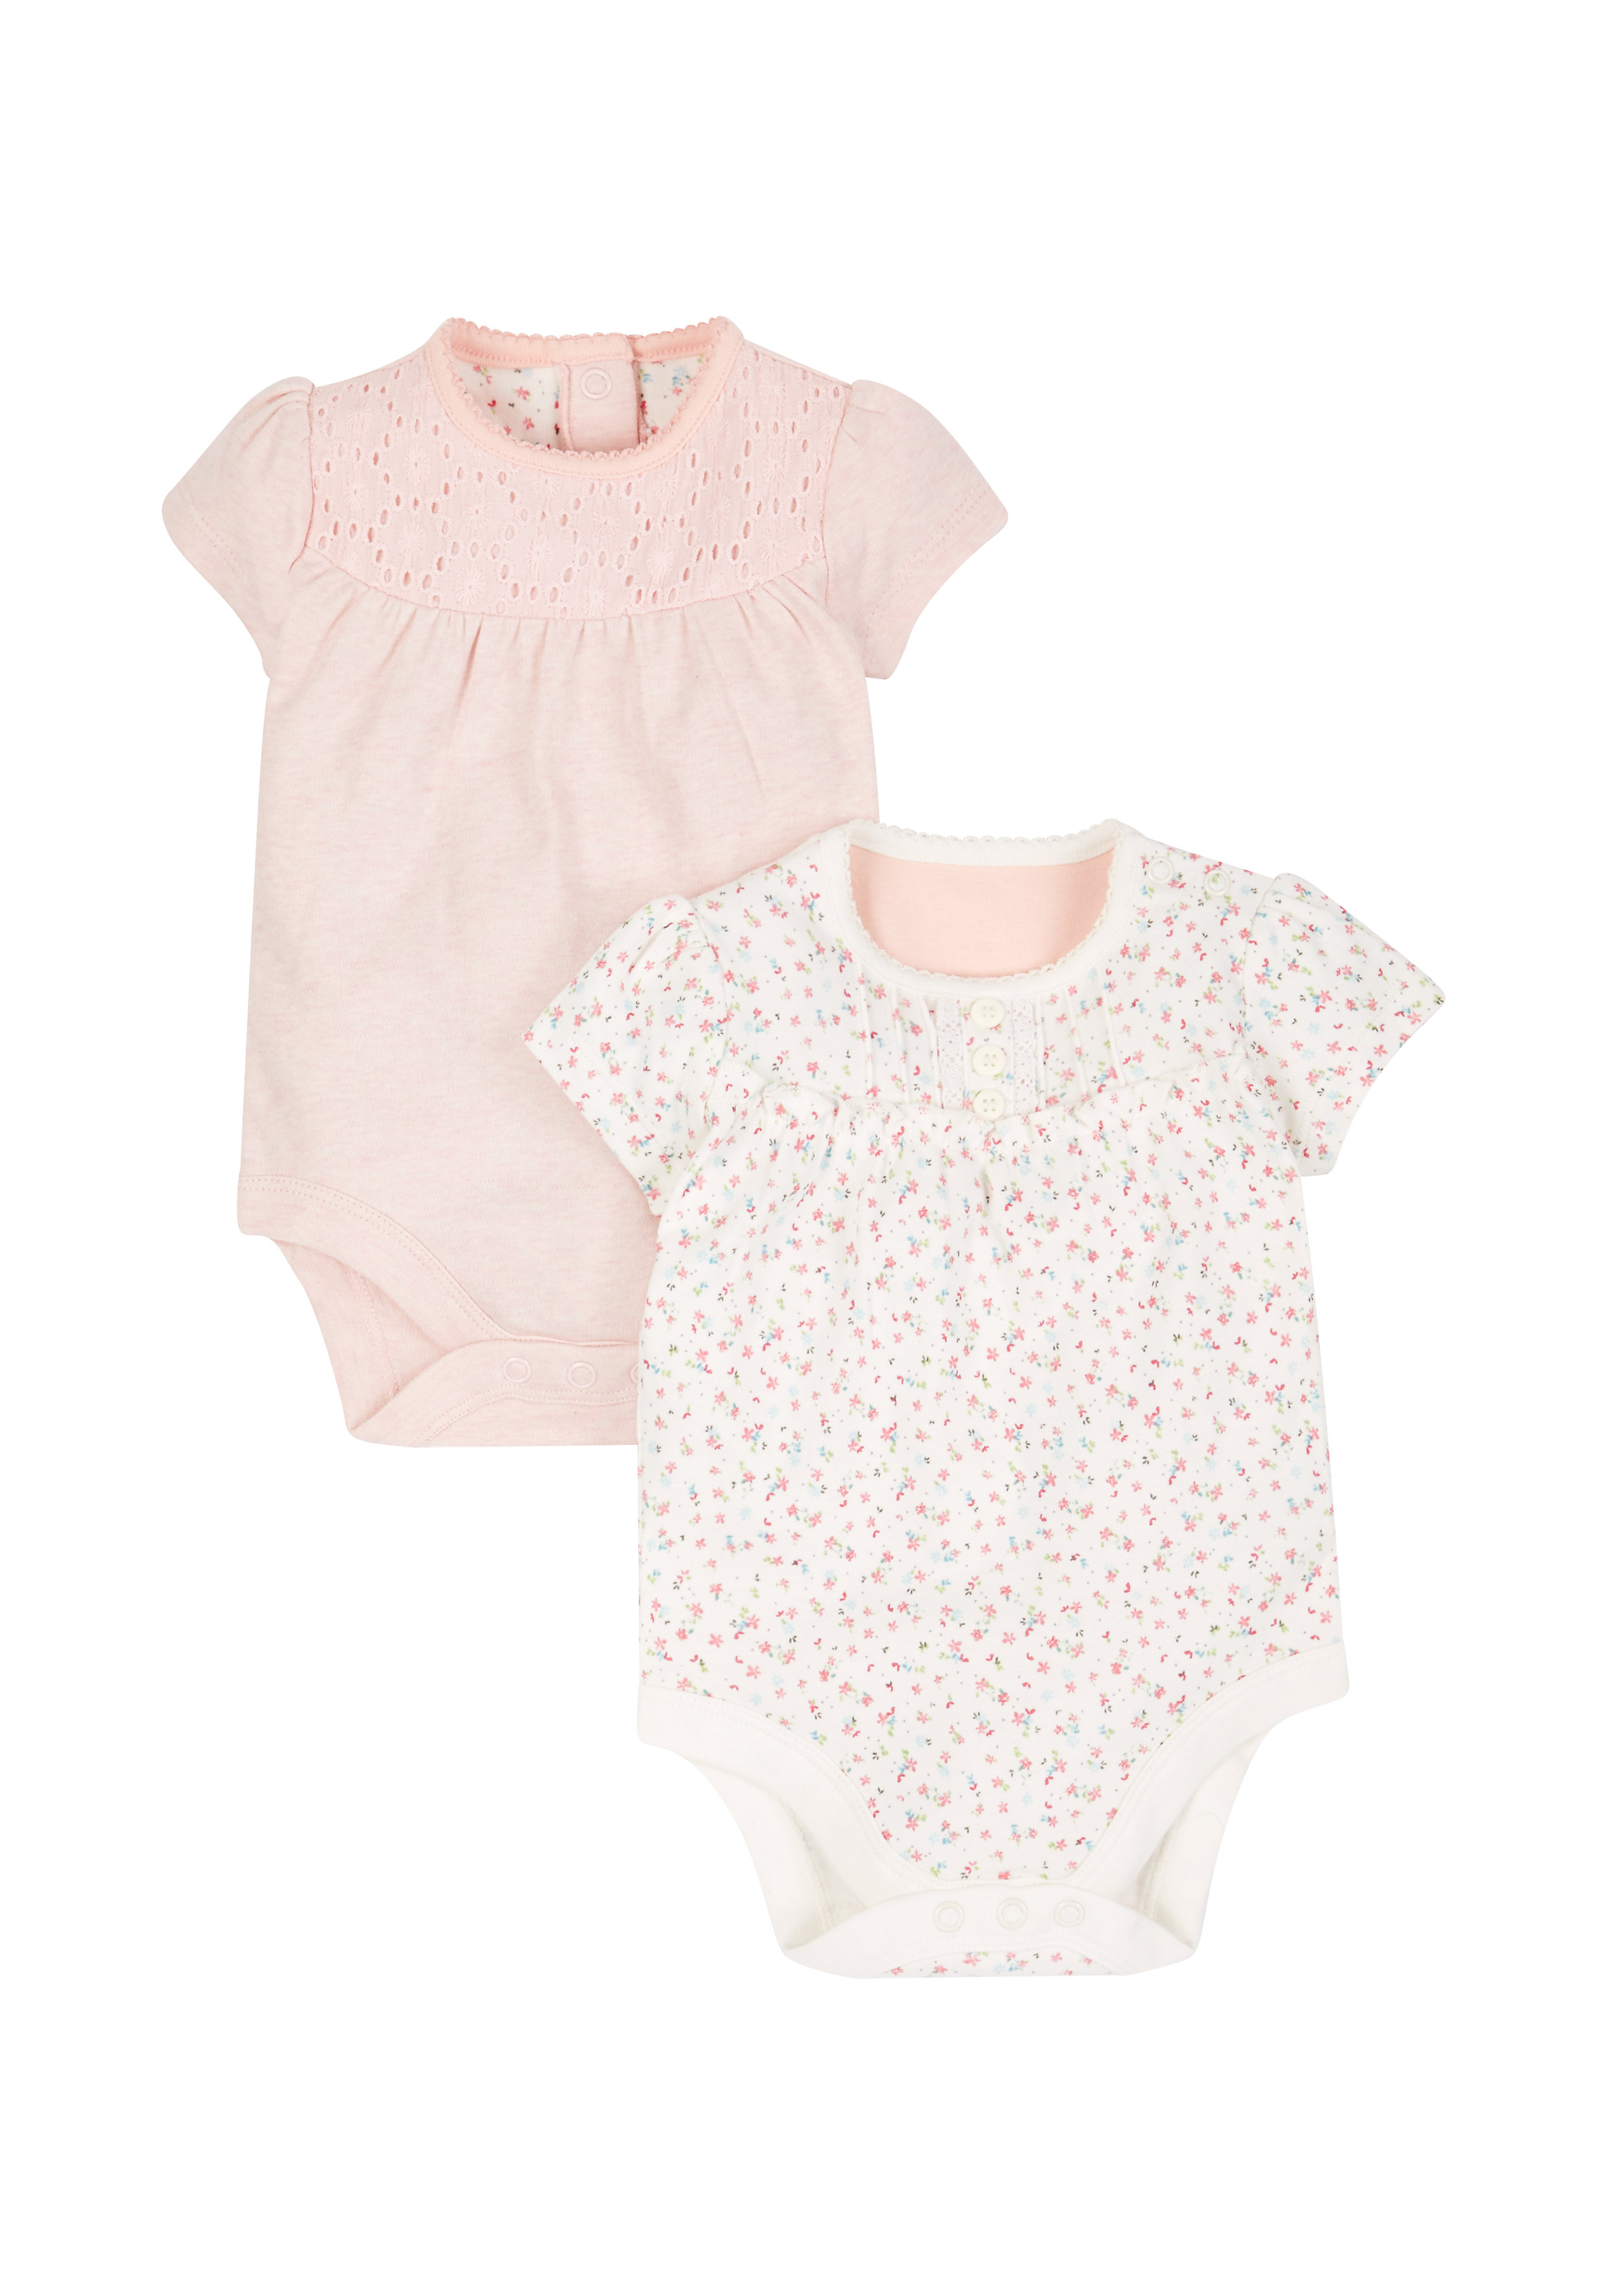 Mothercare | Girls Floral And Pink Broderie Bodysuits - Pack Of 2